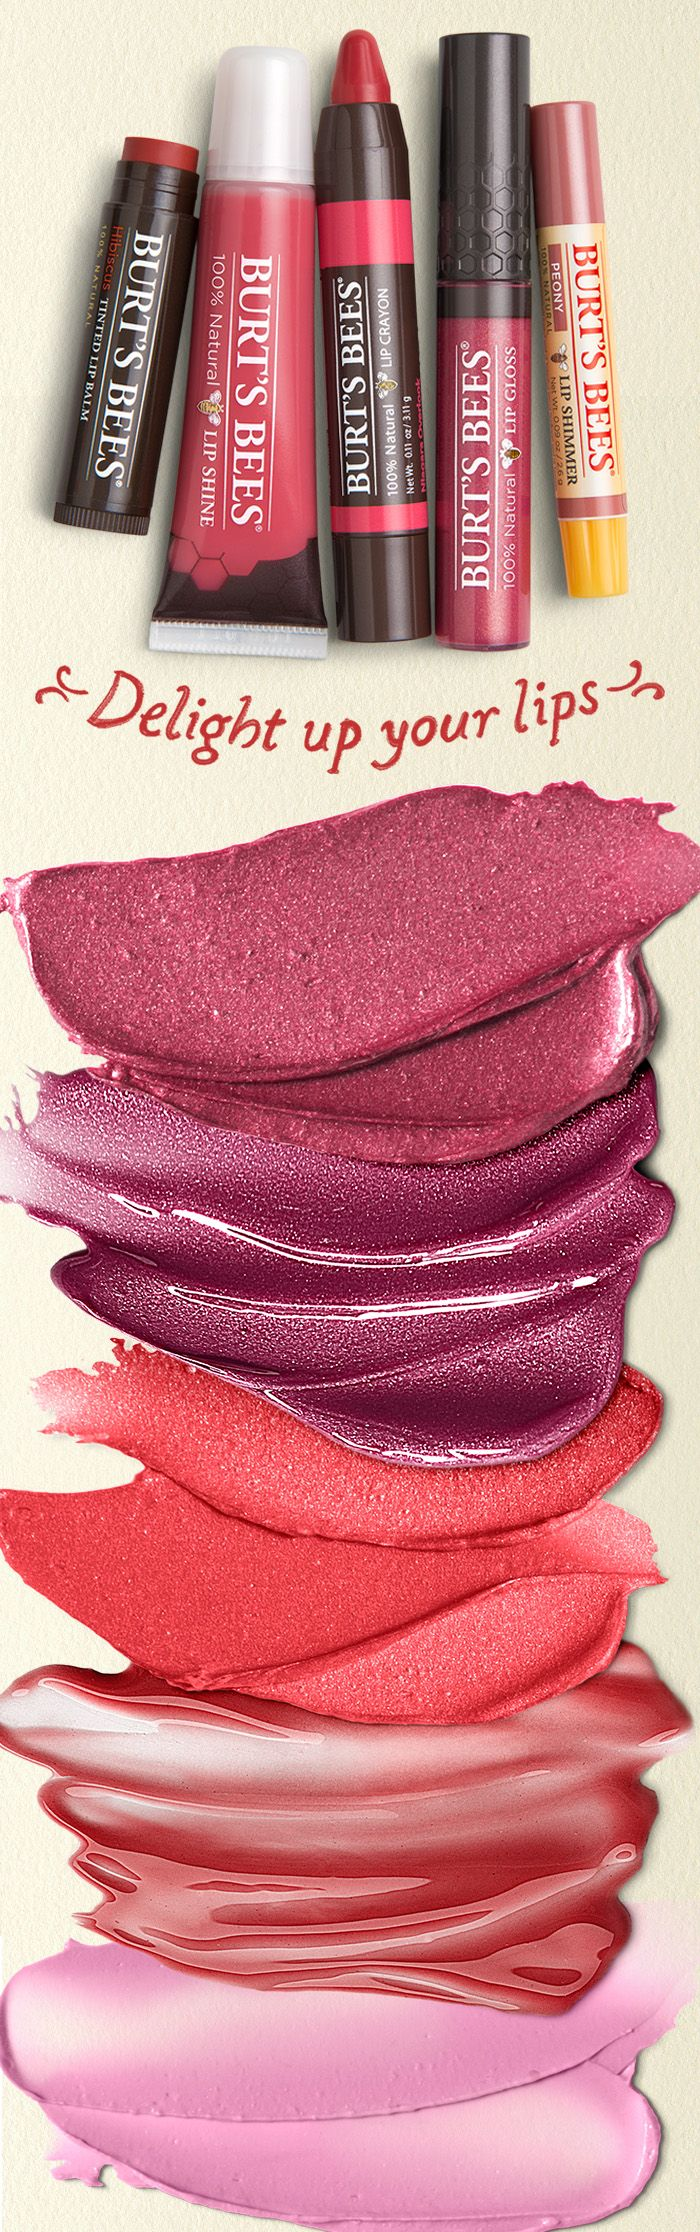 From sheer to shiny, tint to matte, nature is delighting up lips with 5 lines and over 50 perfect shades of pink, red, and neutral lip color for fair skin, dark skin, and every skin.